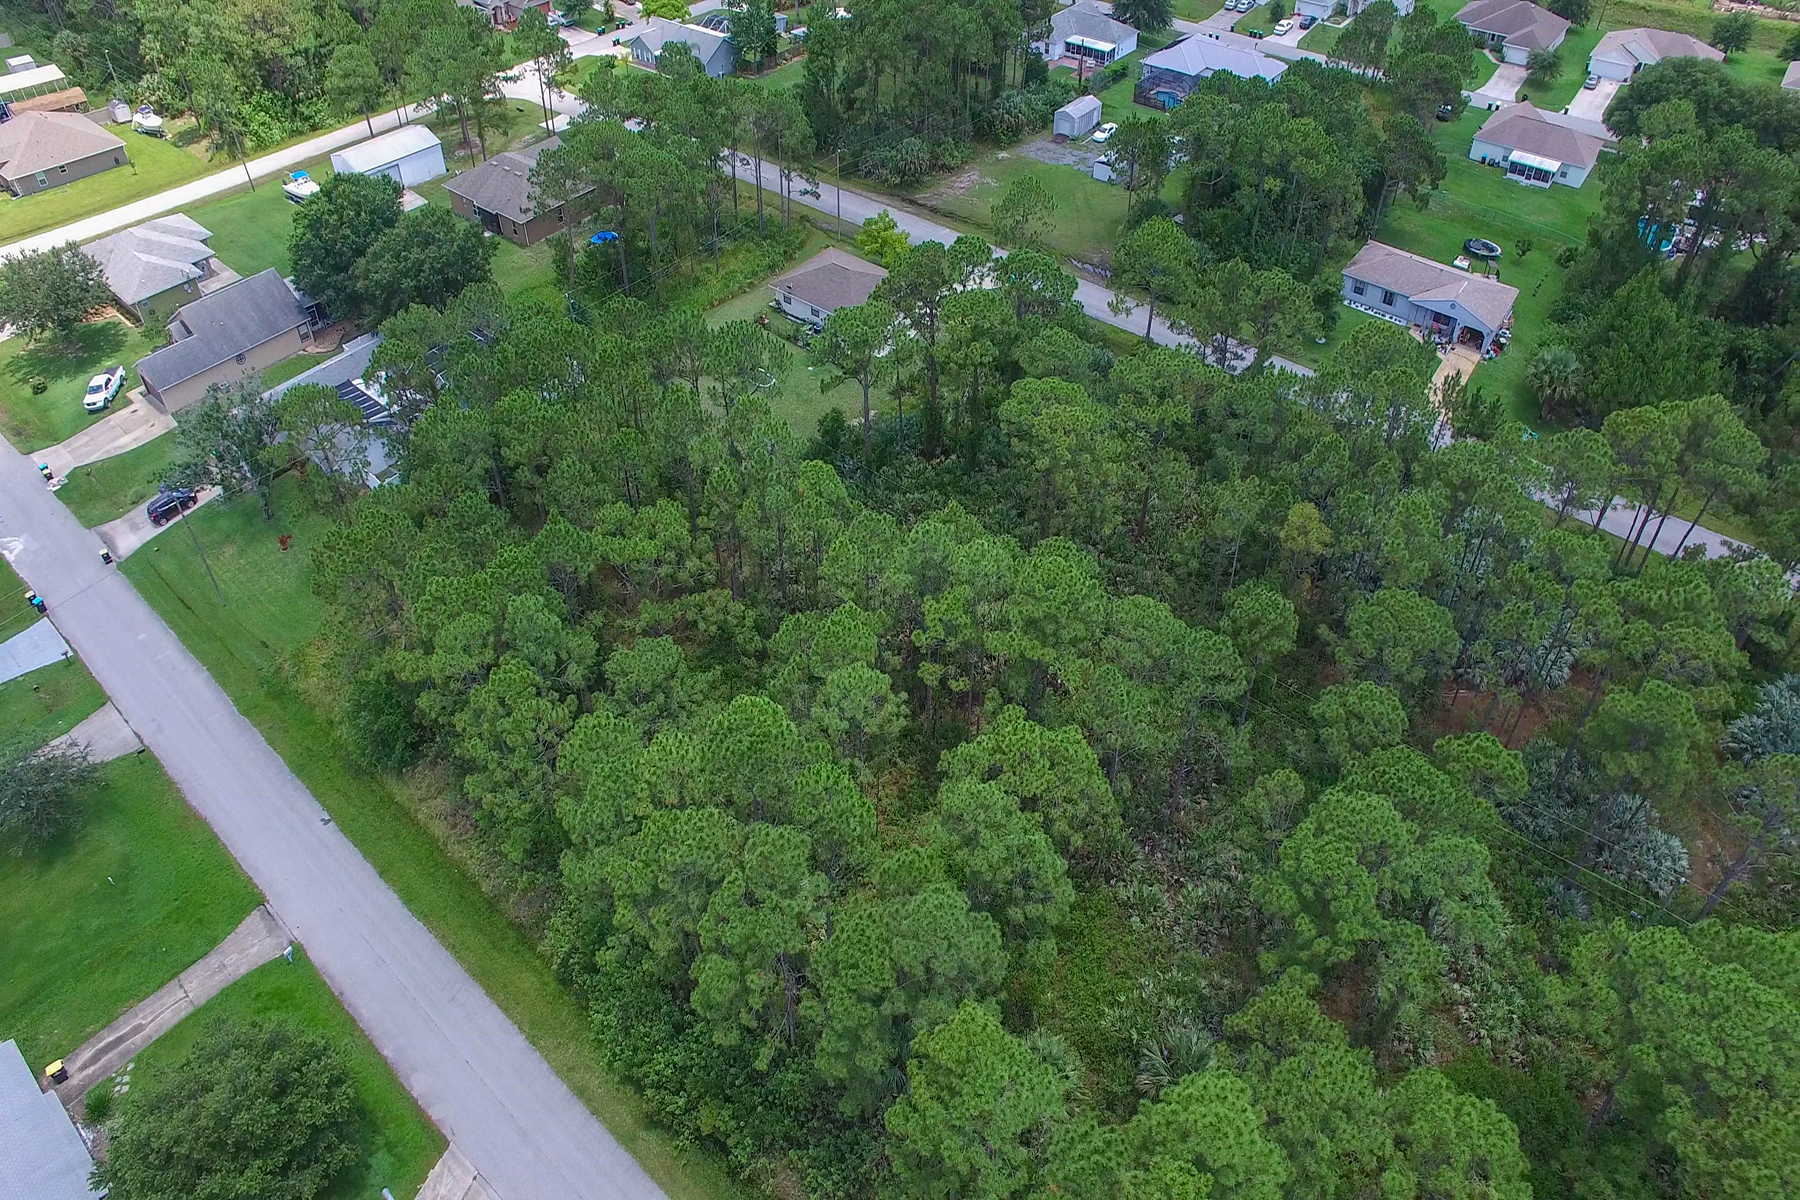 Land for Sale at PALM BAY 330 Dandurand St SW 4, Palm Bay, Florida 32908 United States